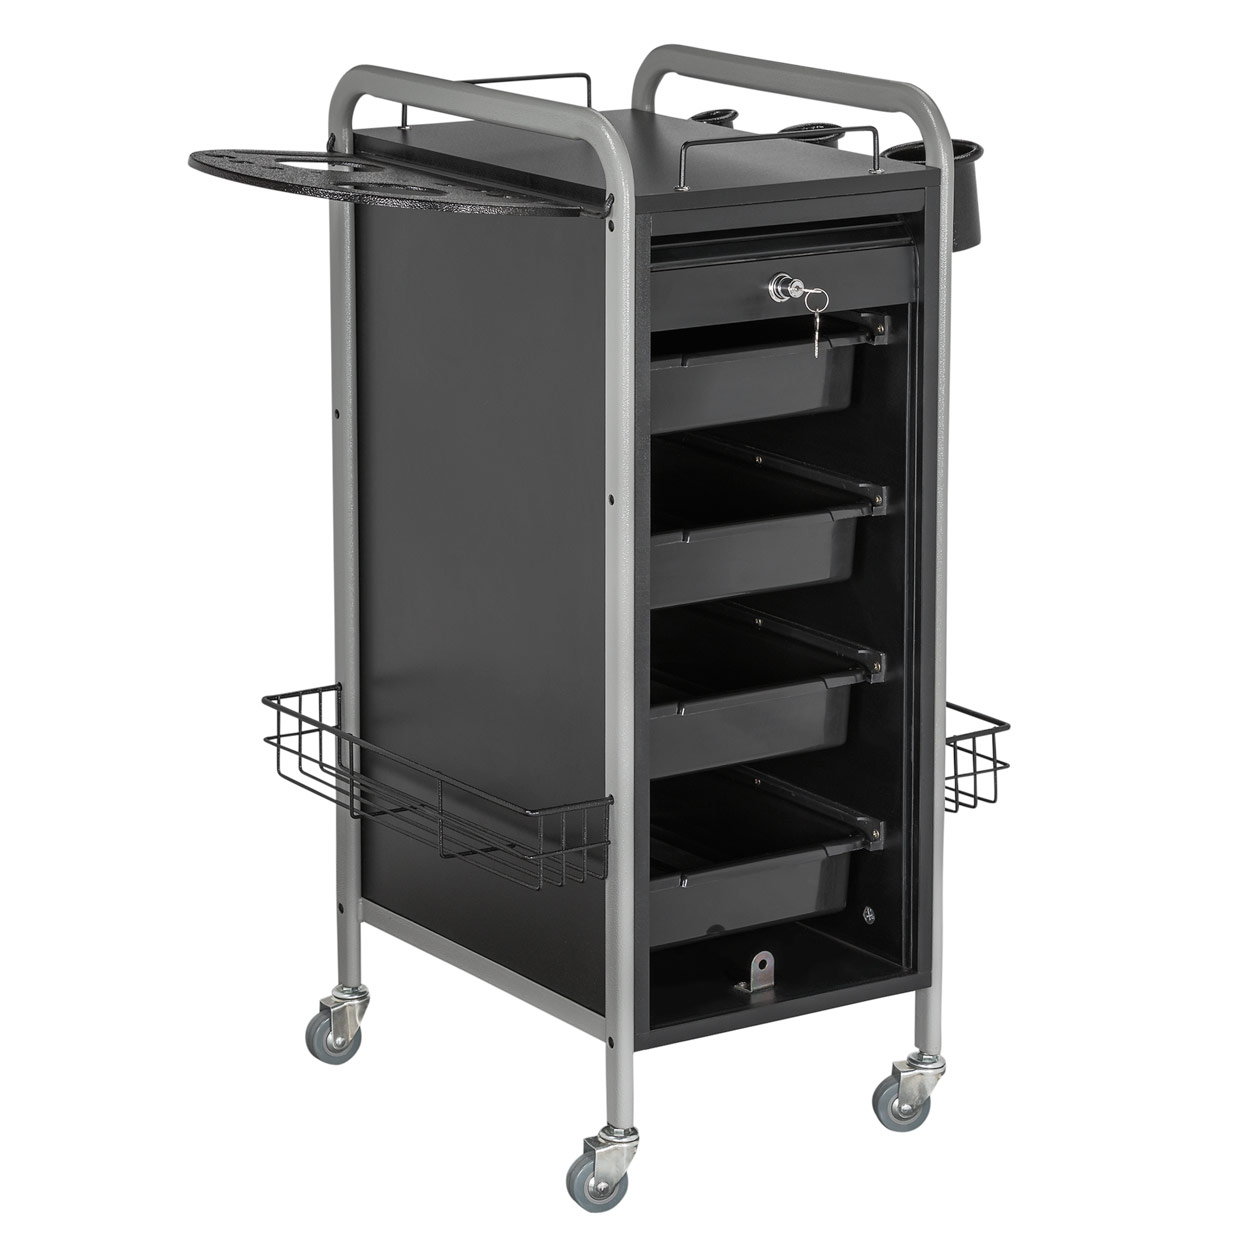 Hair Salon Metal Locking Trolley Cart with Appliance Holder  main product image